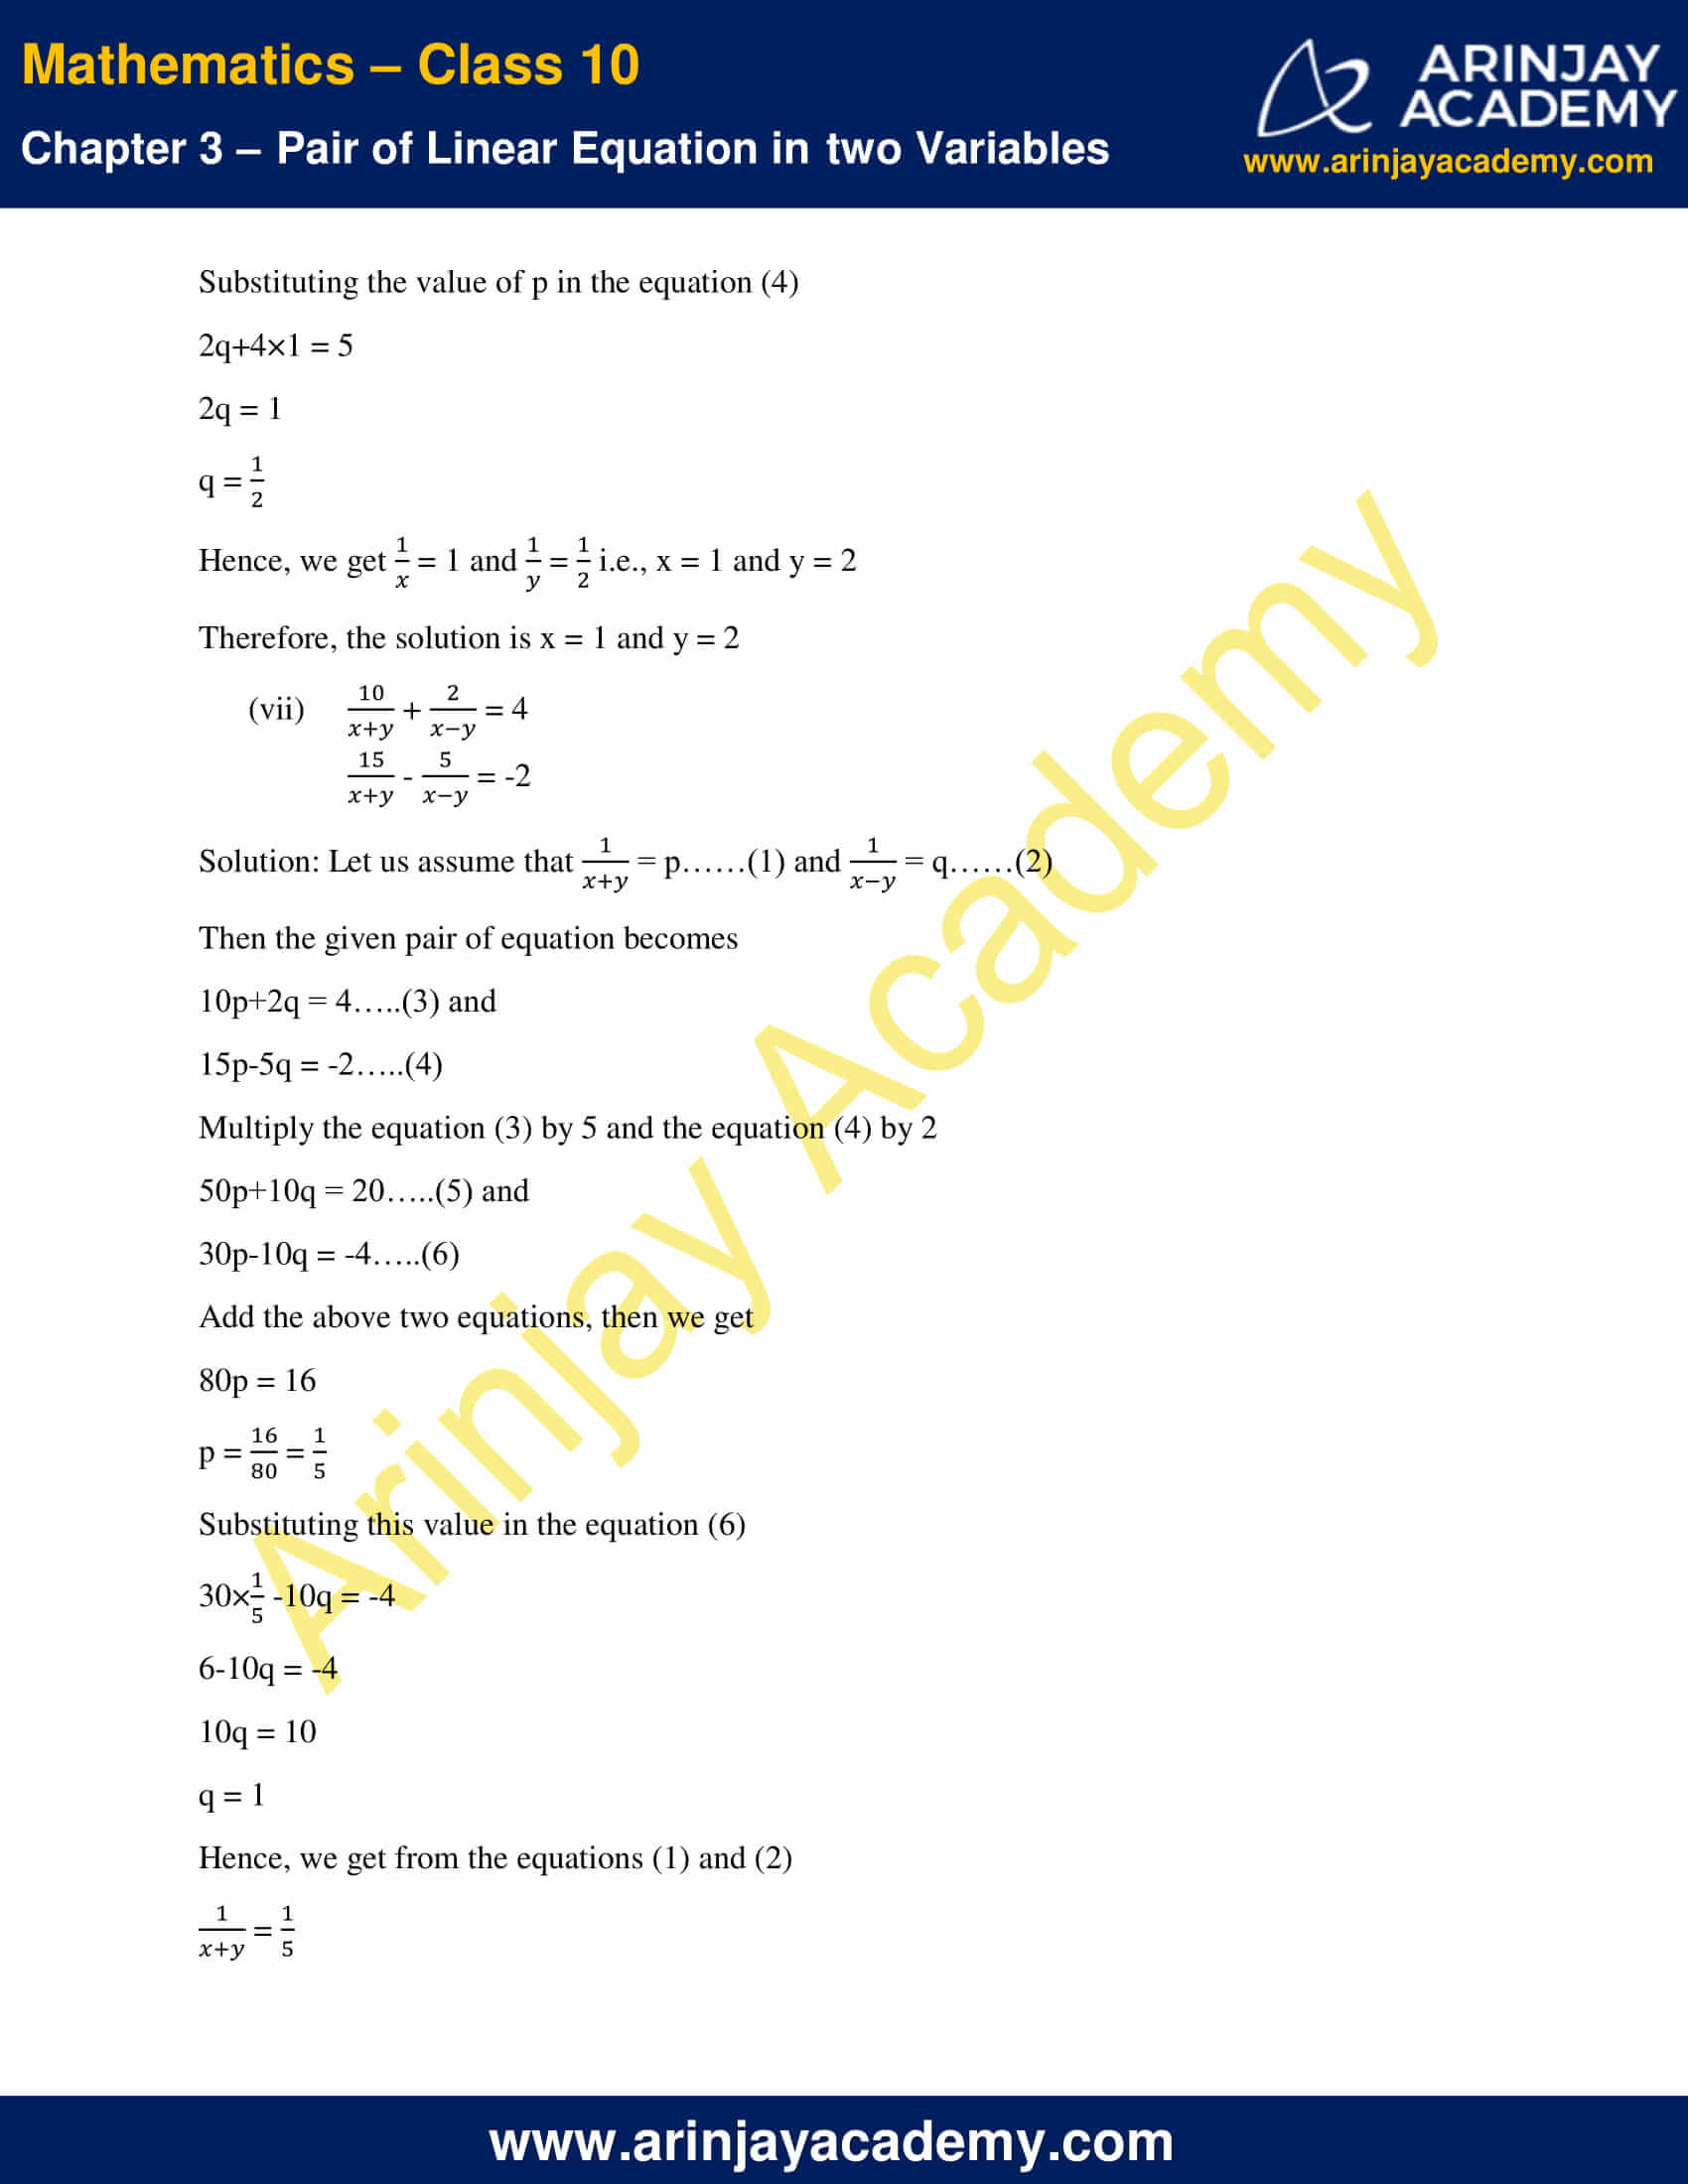 NCERT Solutions For Class 10 Maths Chapter 3 Exercise 3.6 image 6